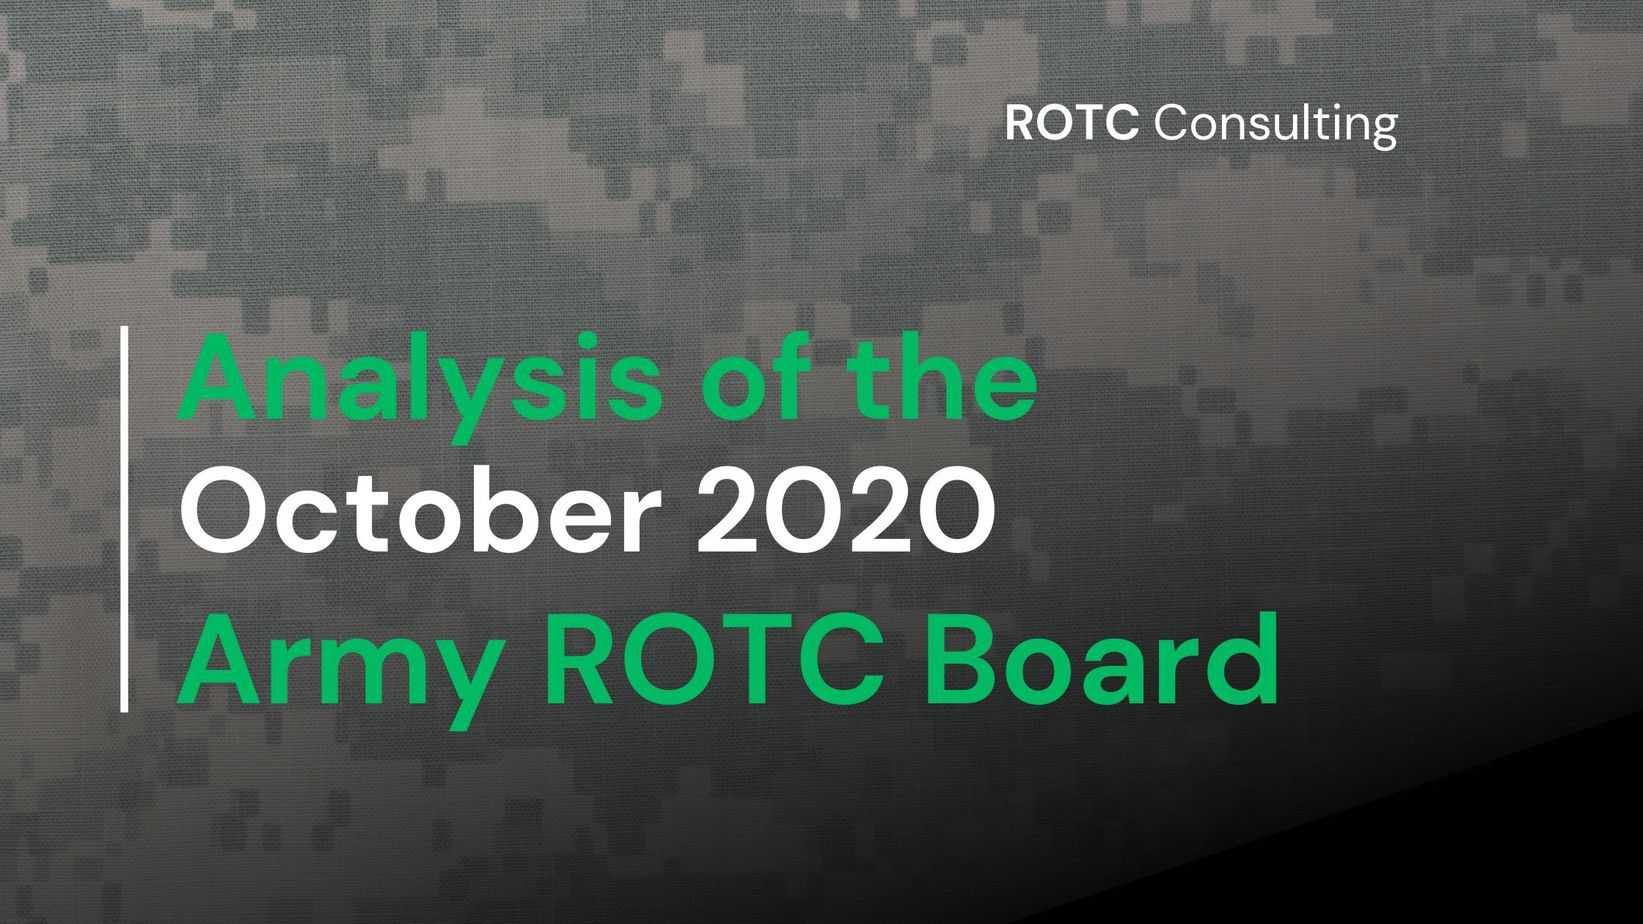 Analysis of the October 2020 Army ROTC Board Results Graphic